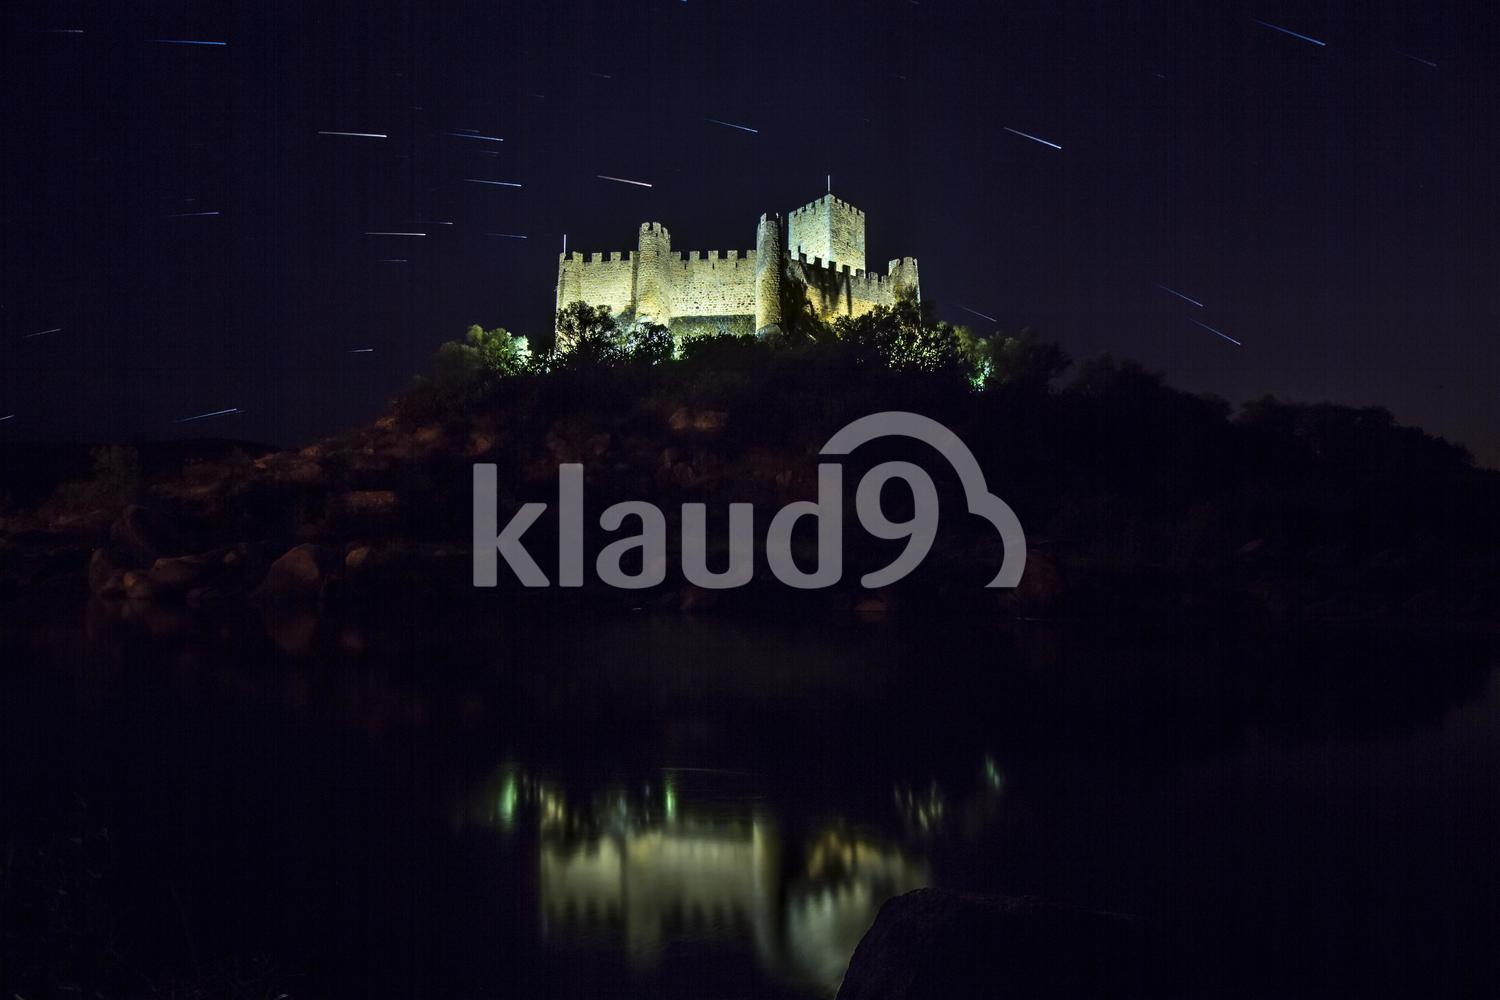 castle by night with stars